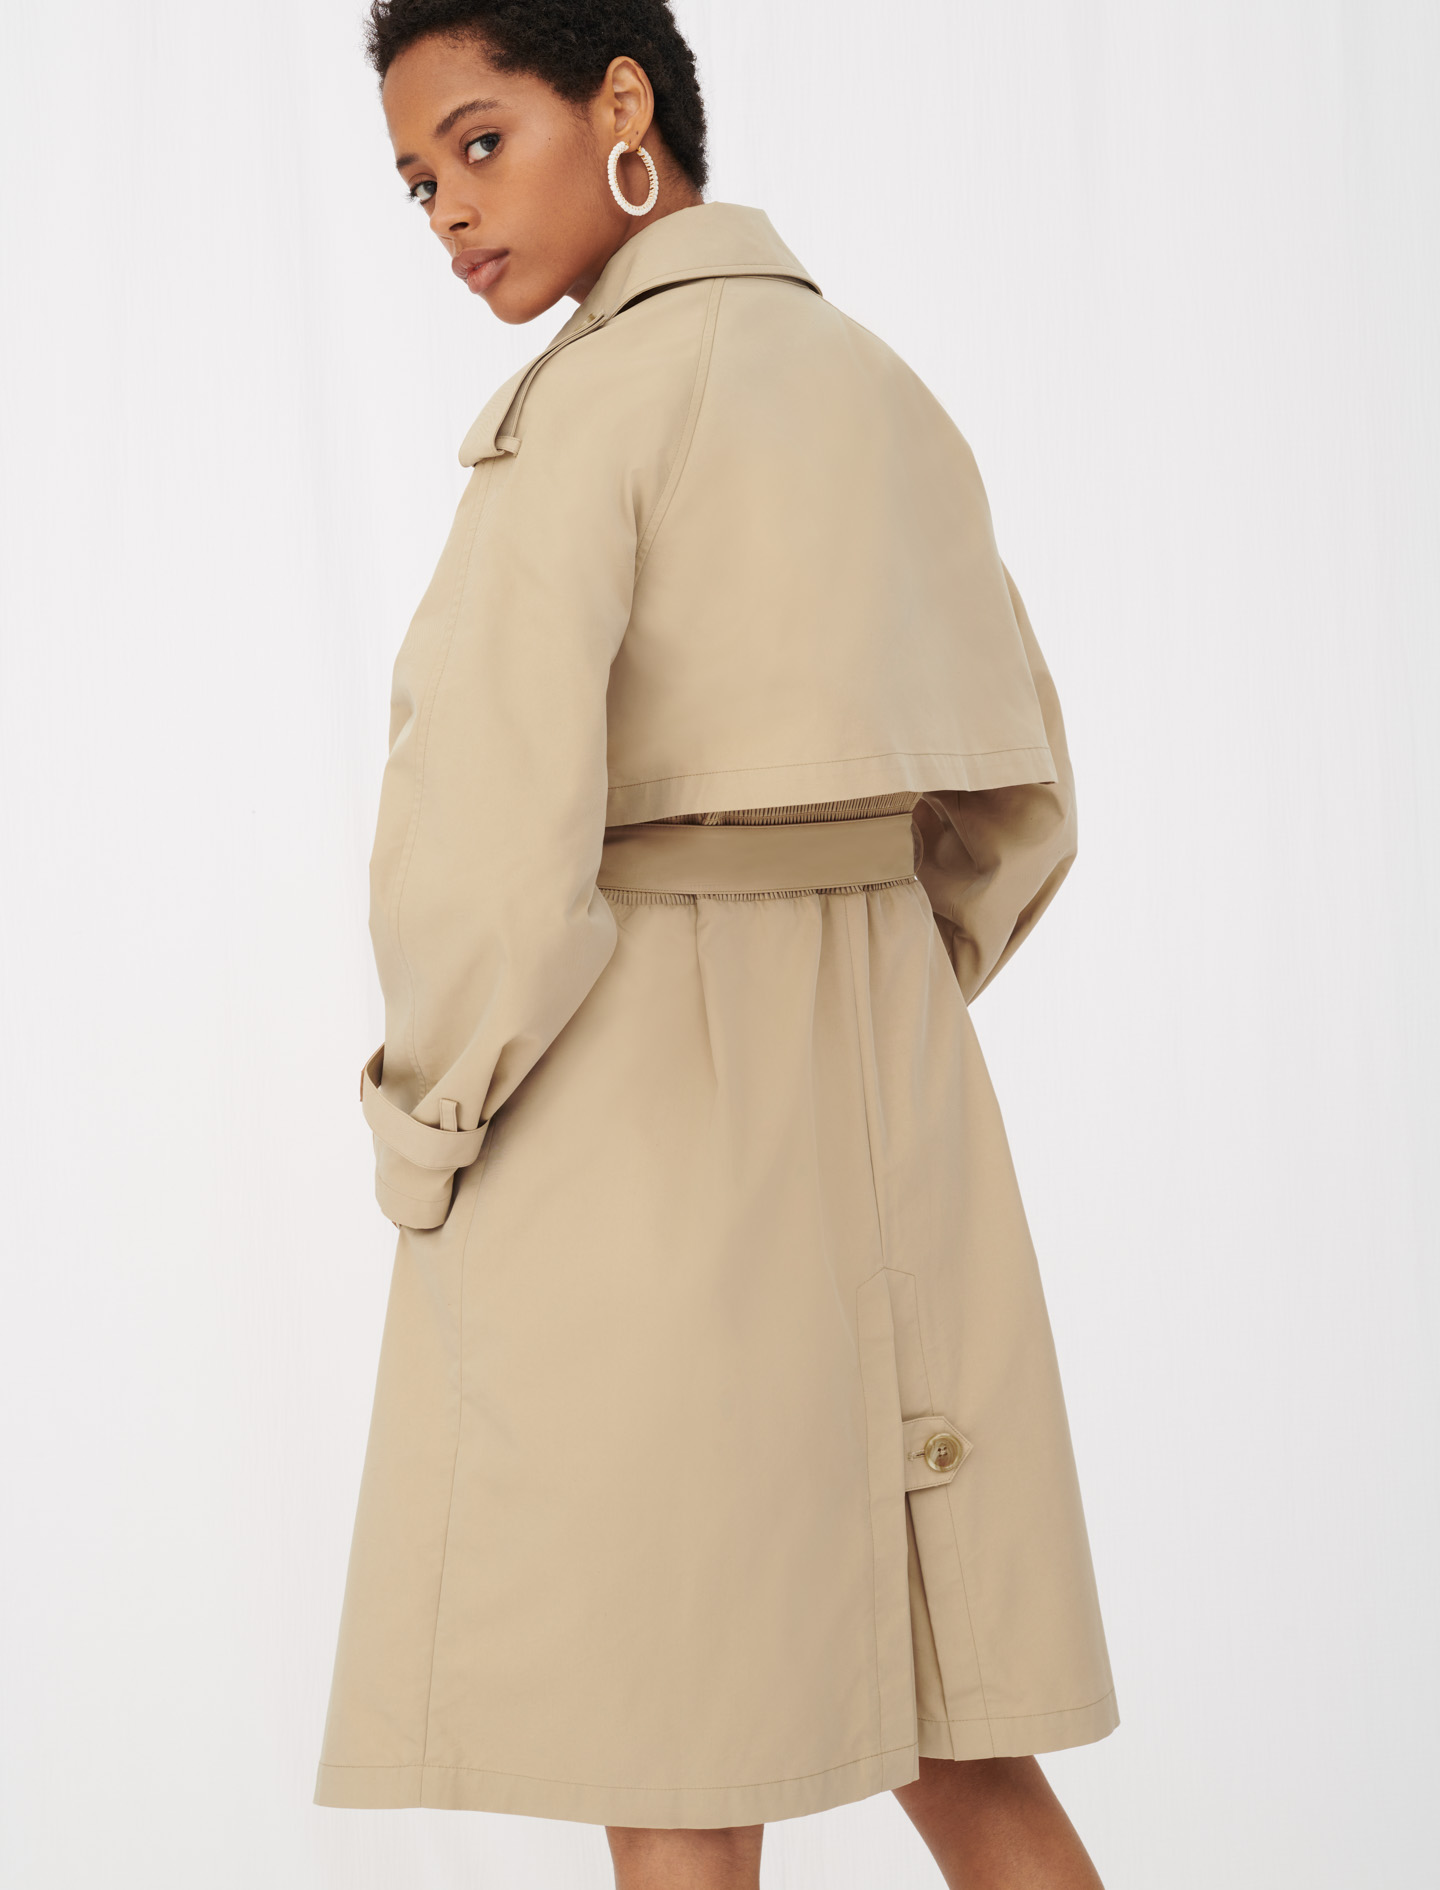 Belted trench coat with leather patches - Camel